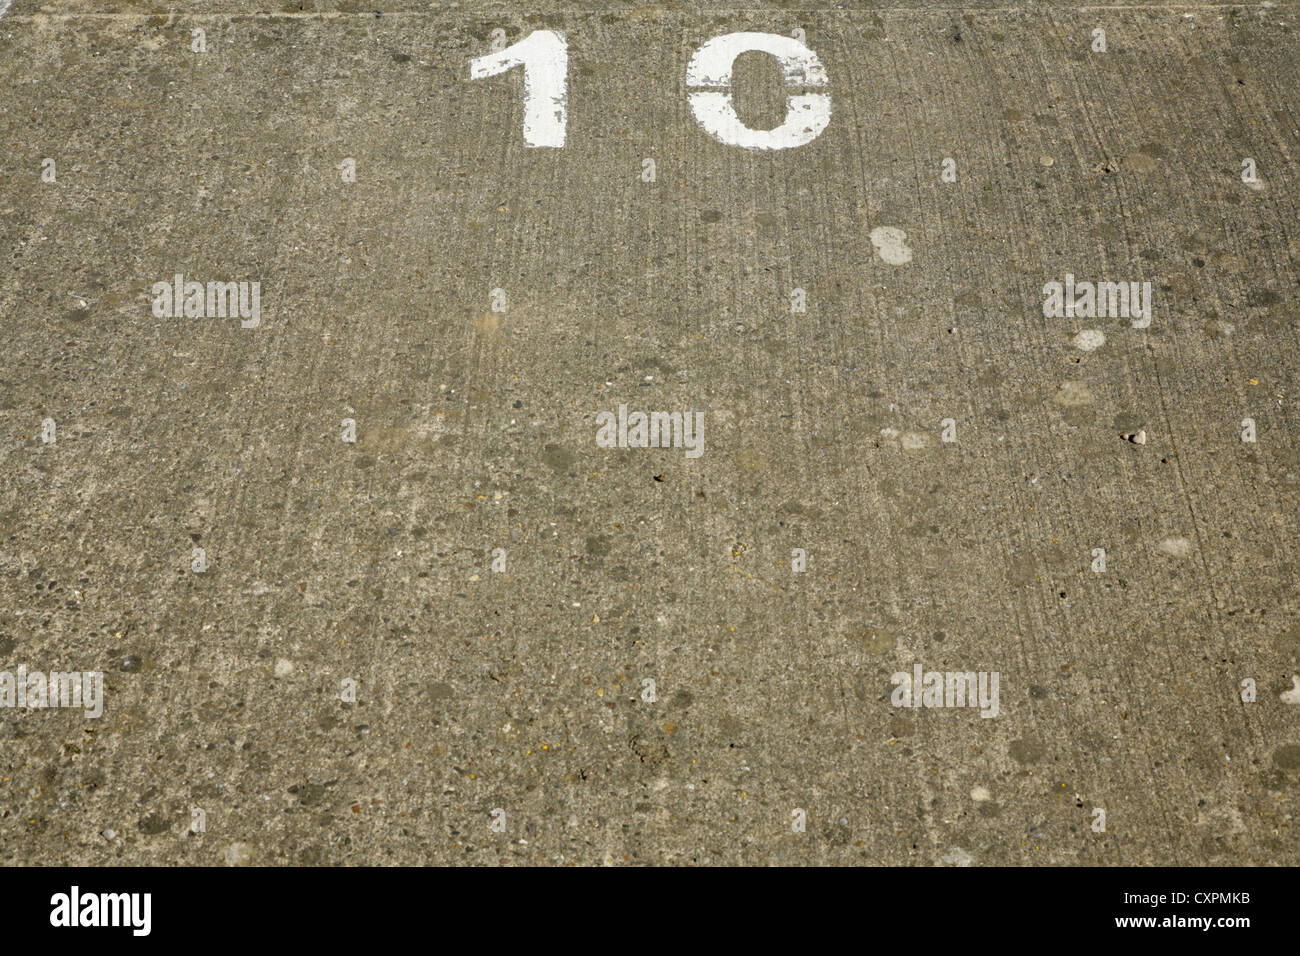 Number 10 painted onto concrete surface - Stock Image